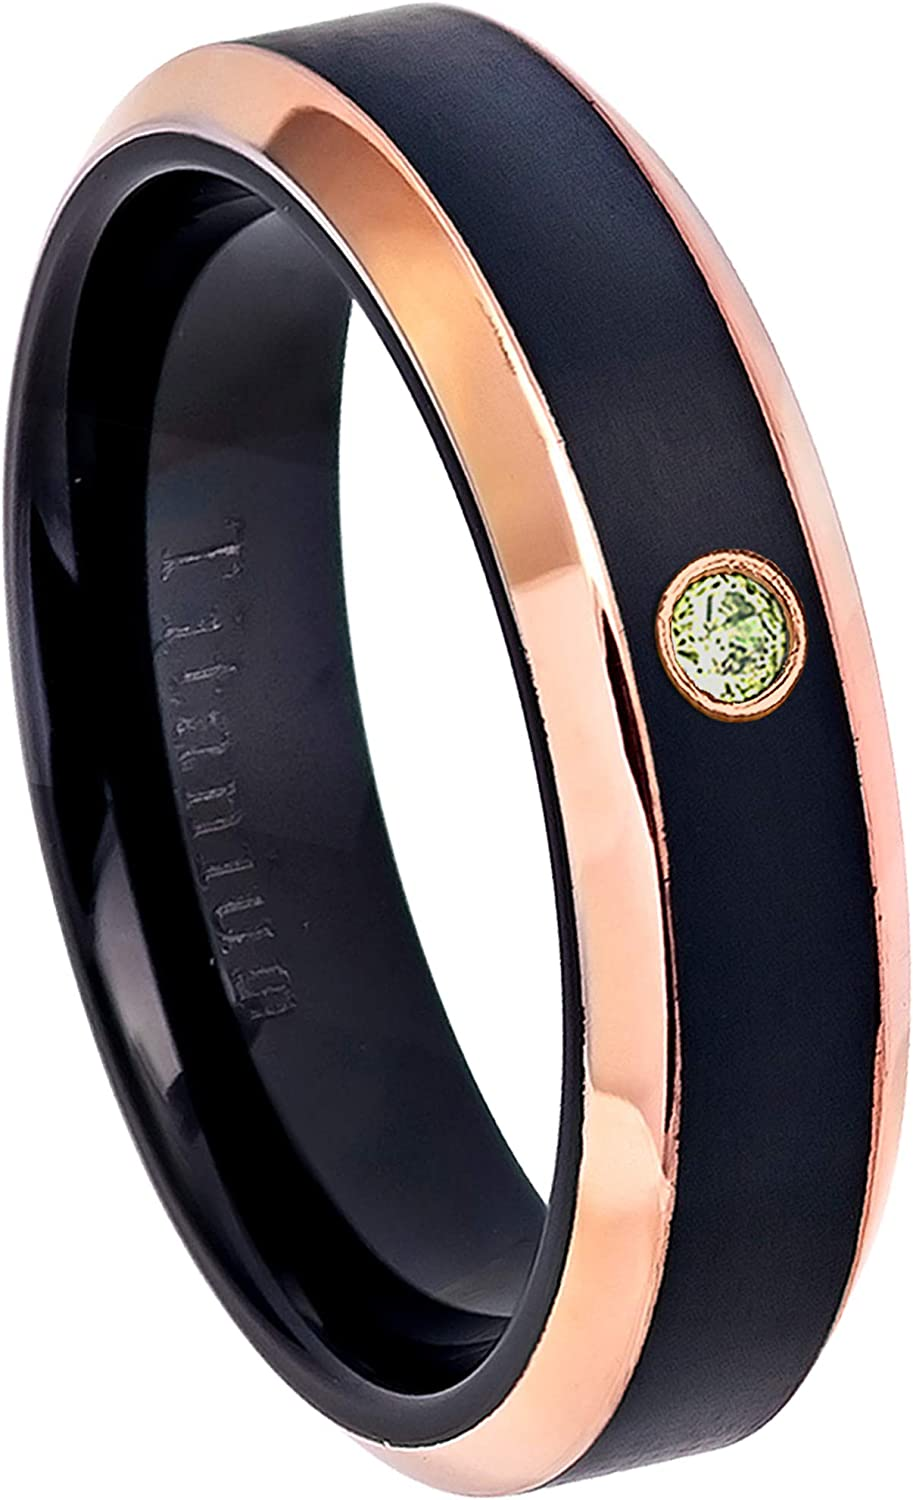 August Birthstone Ring 0.07ct Peridot Titanium Ring 6MM Black Ion Plated /& Rose Gold Plated Beveled Edge Comfort Fit Titanium Wedding Band